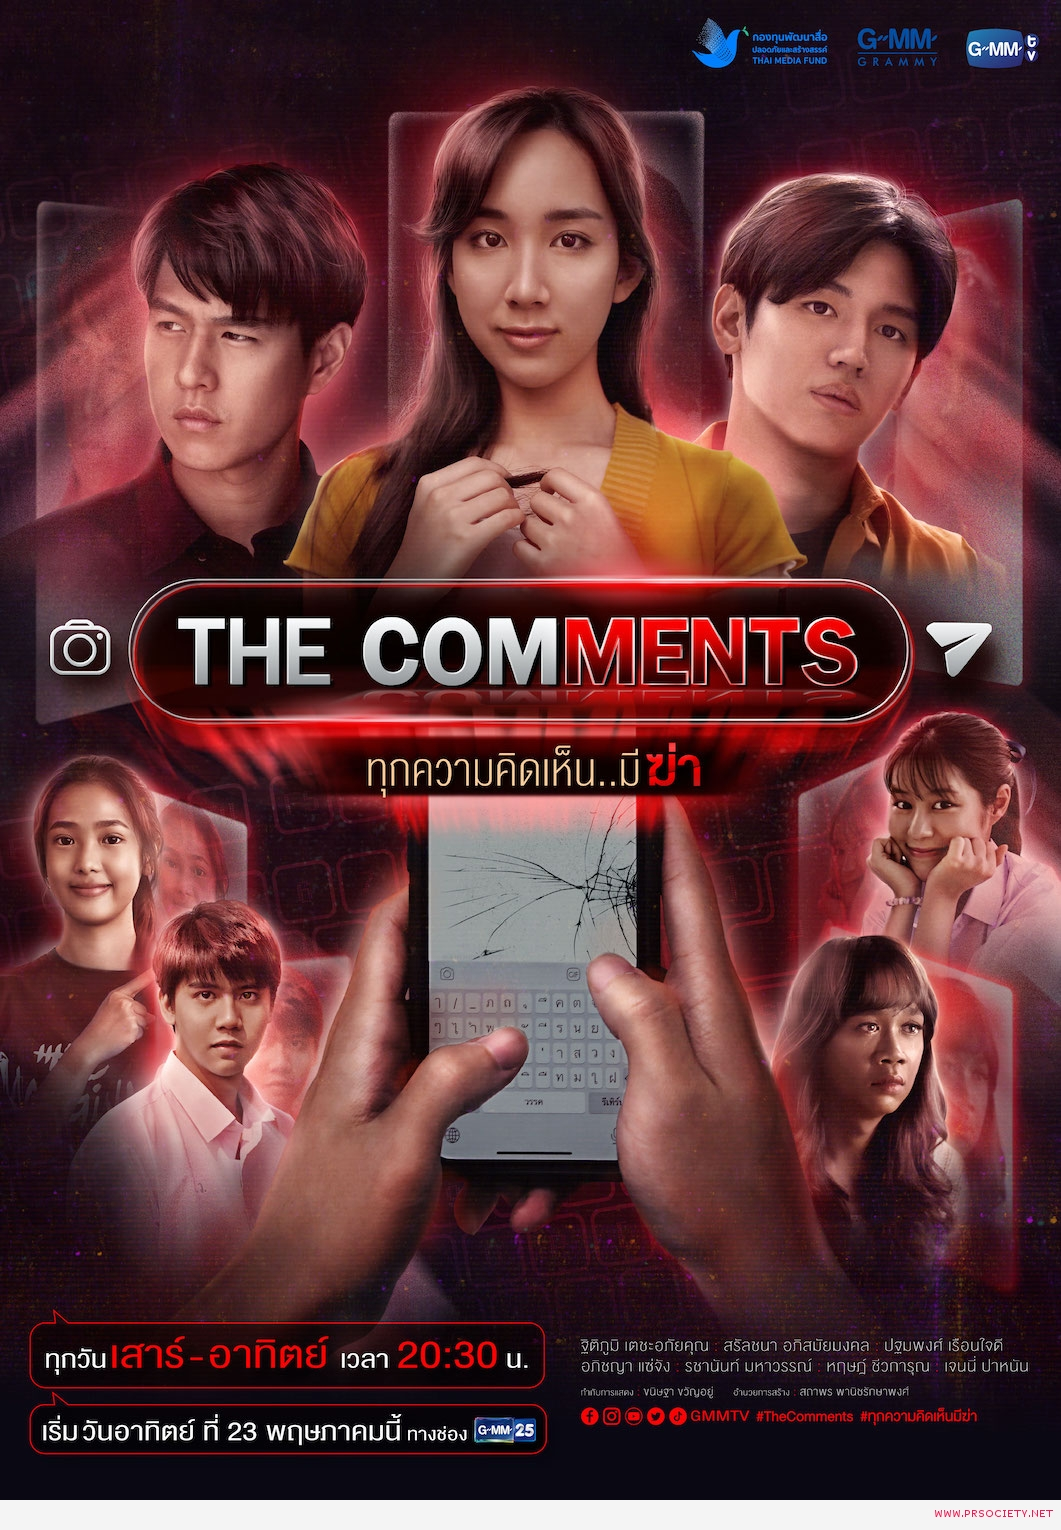 AW_The Comments_Poster_A3